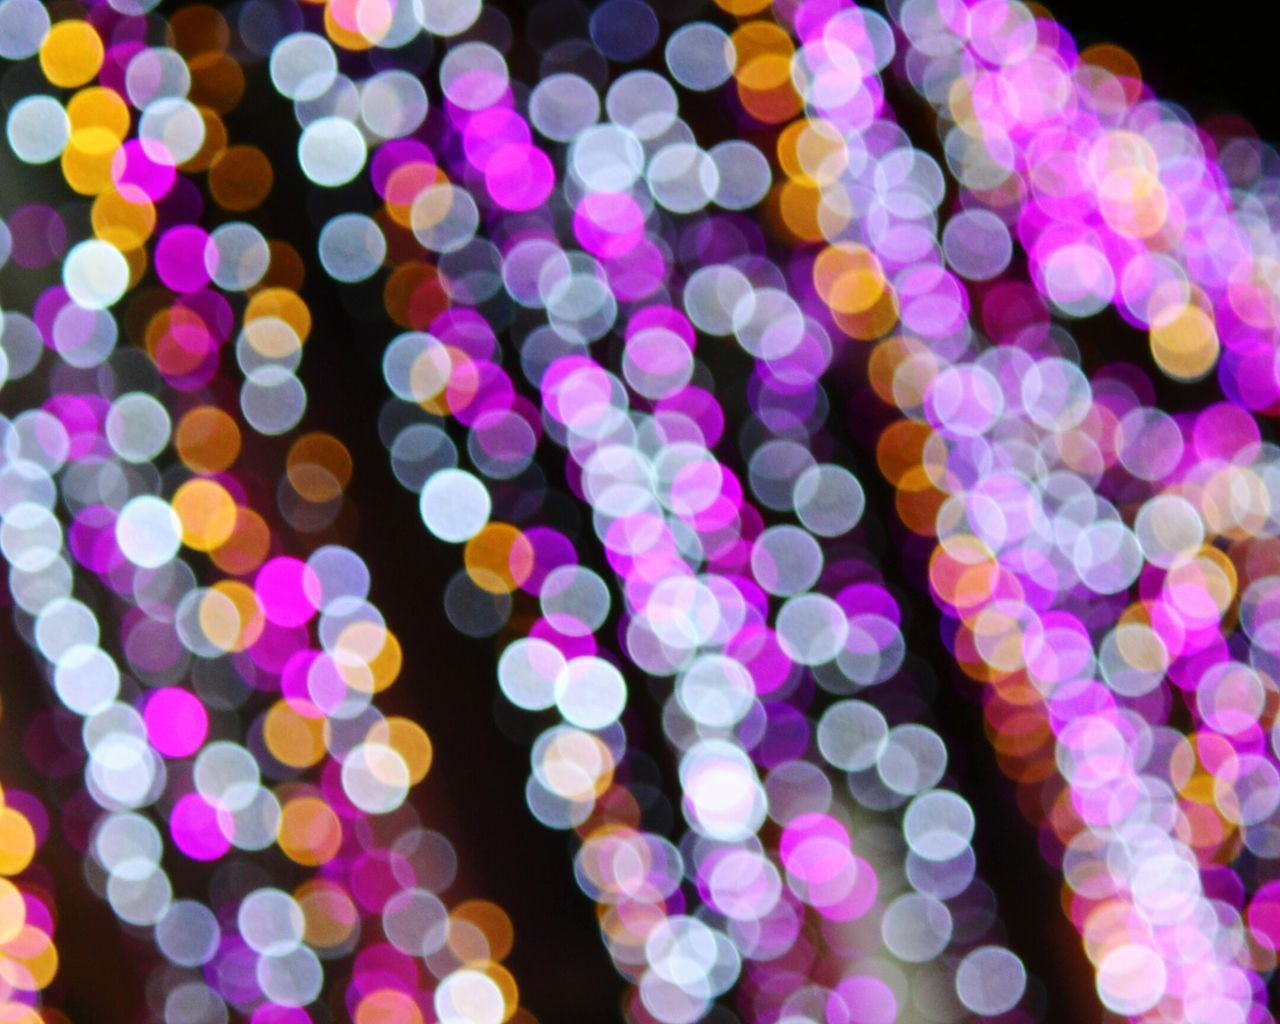 illuminated, lighting equipment, night, defocused, no people, backgrounds, pattern, abstract, light effect, full frame, light bulb, outdoors, multi colored, close-up